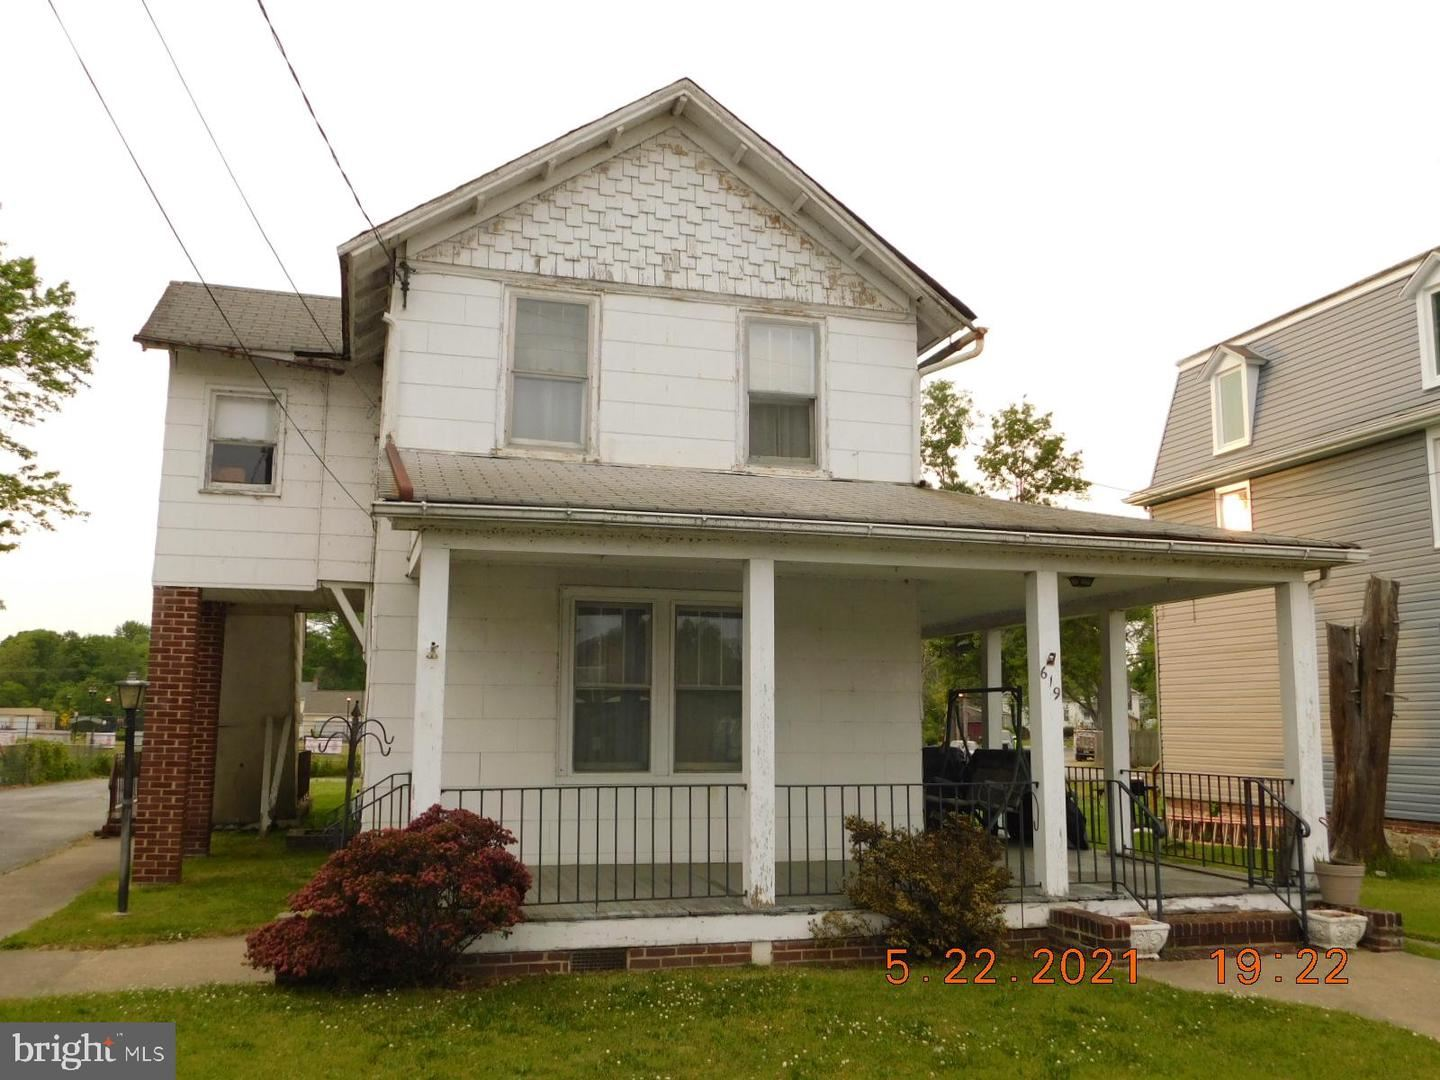 619 BROAD ST, Perryville, MD 21903 - MLS#: MDCC174966